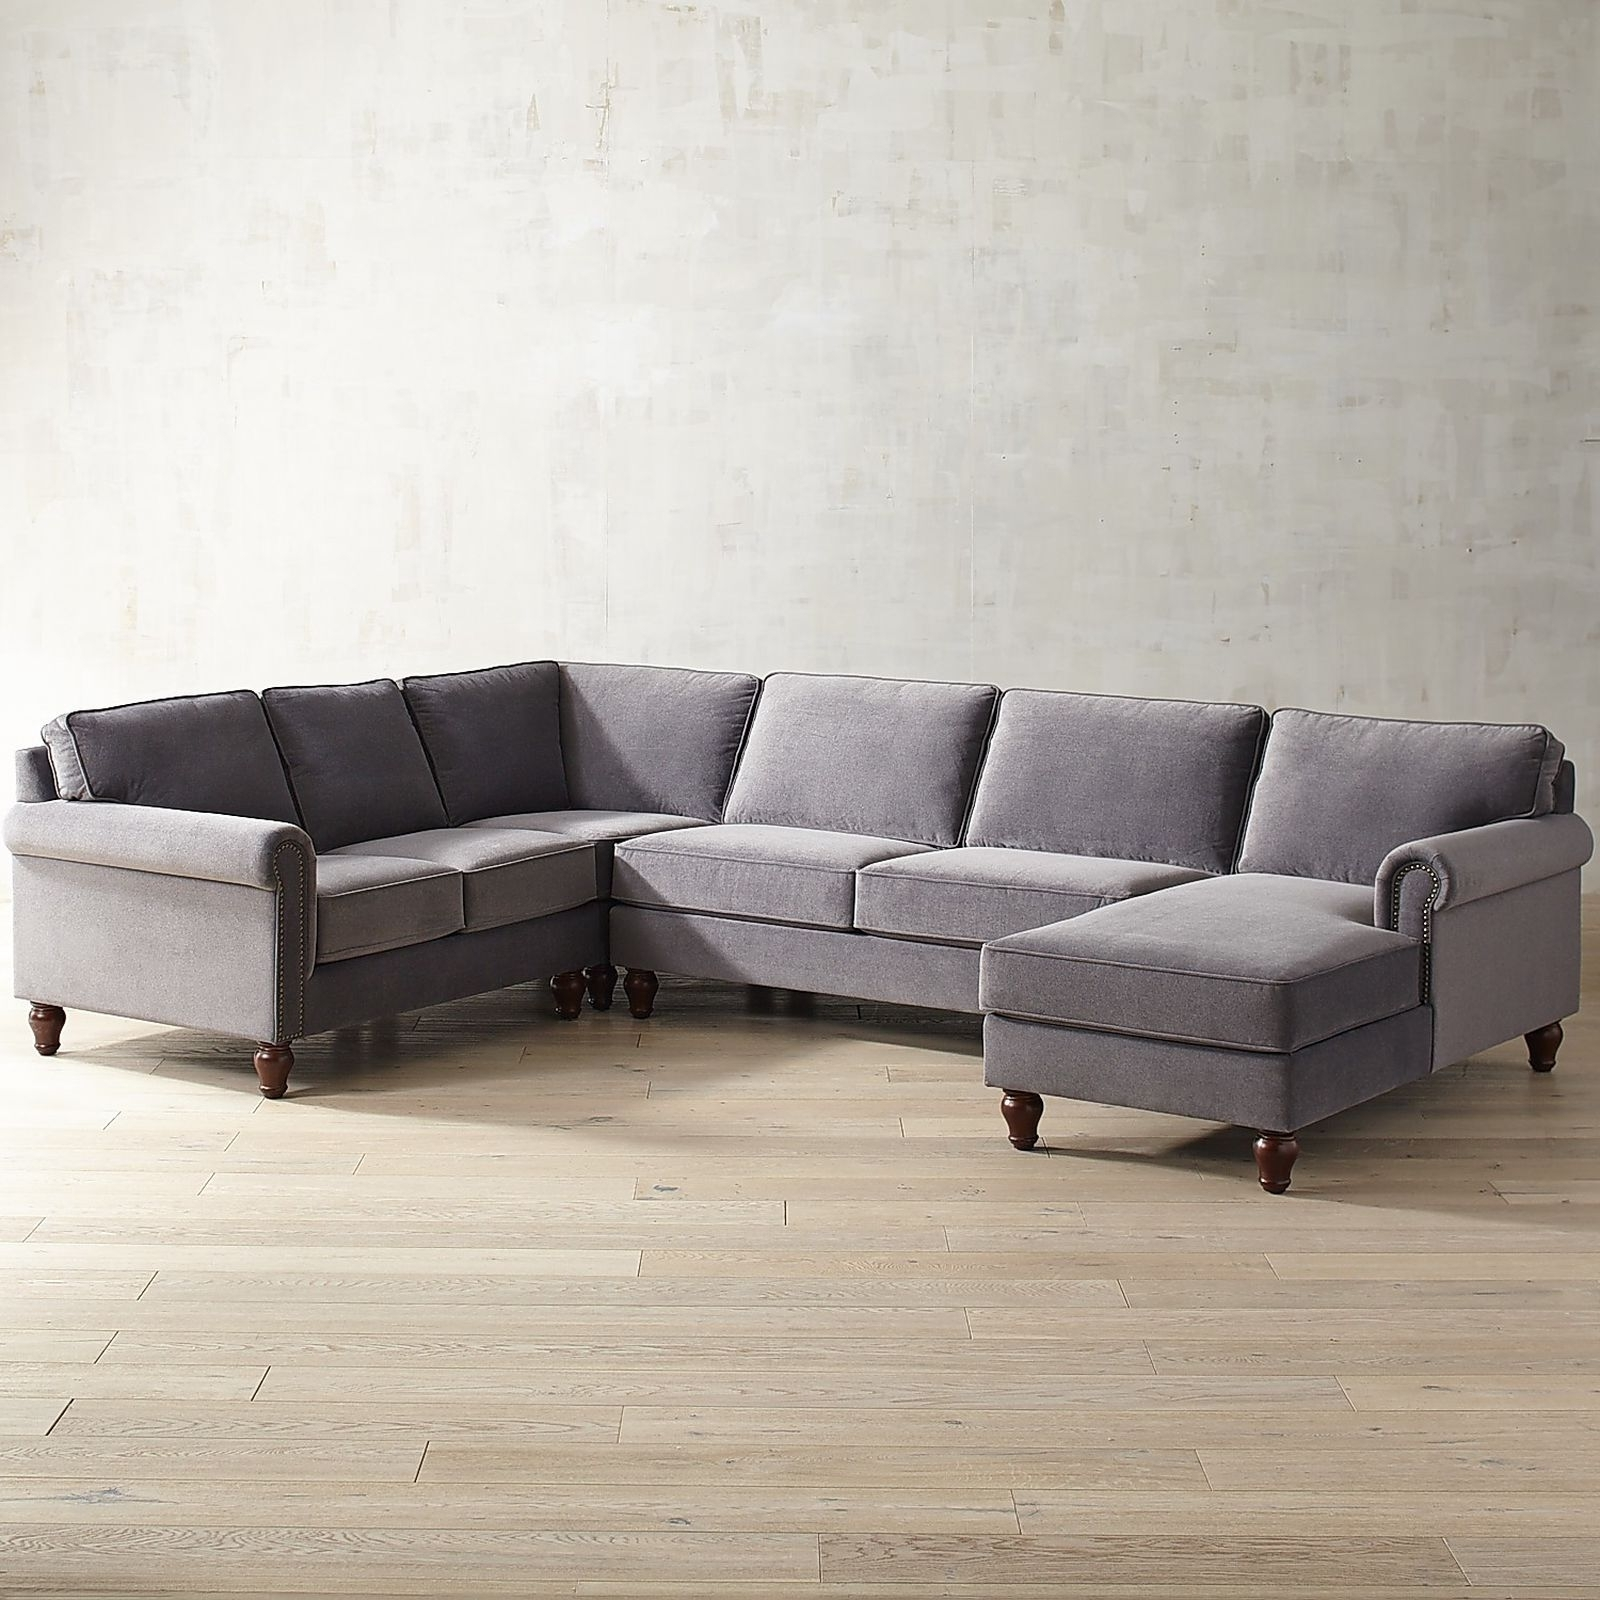 Well Liked Canada Sale Sectional Sofas With Regard To Sectional Sofa Clearance Sale Sofas Warehouse Toronto Fabric (View 6 of 15)